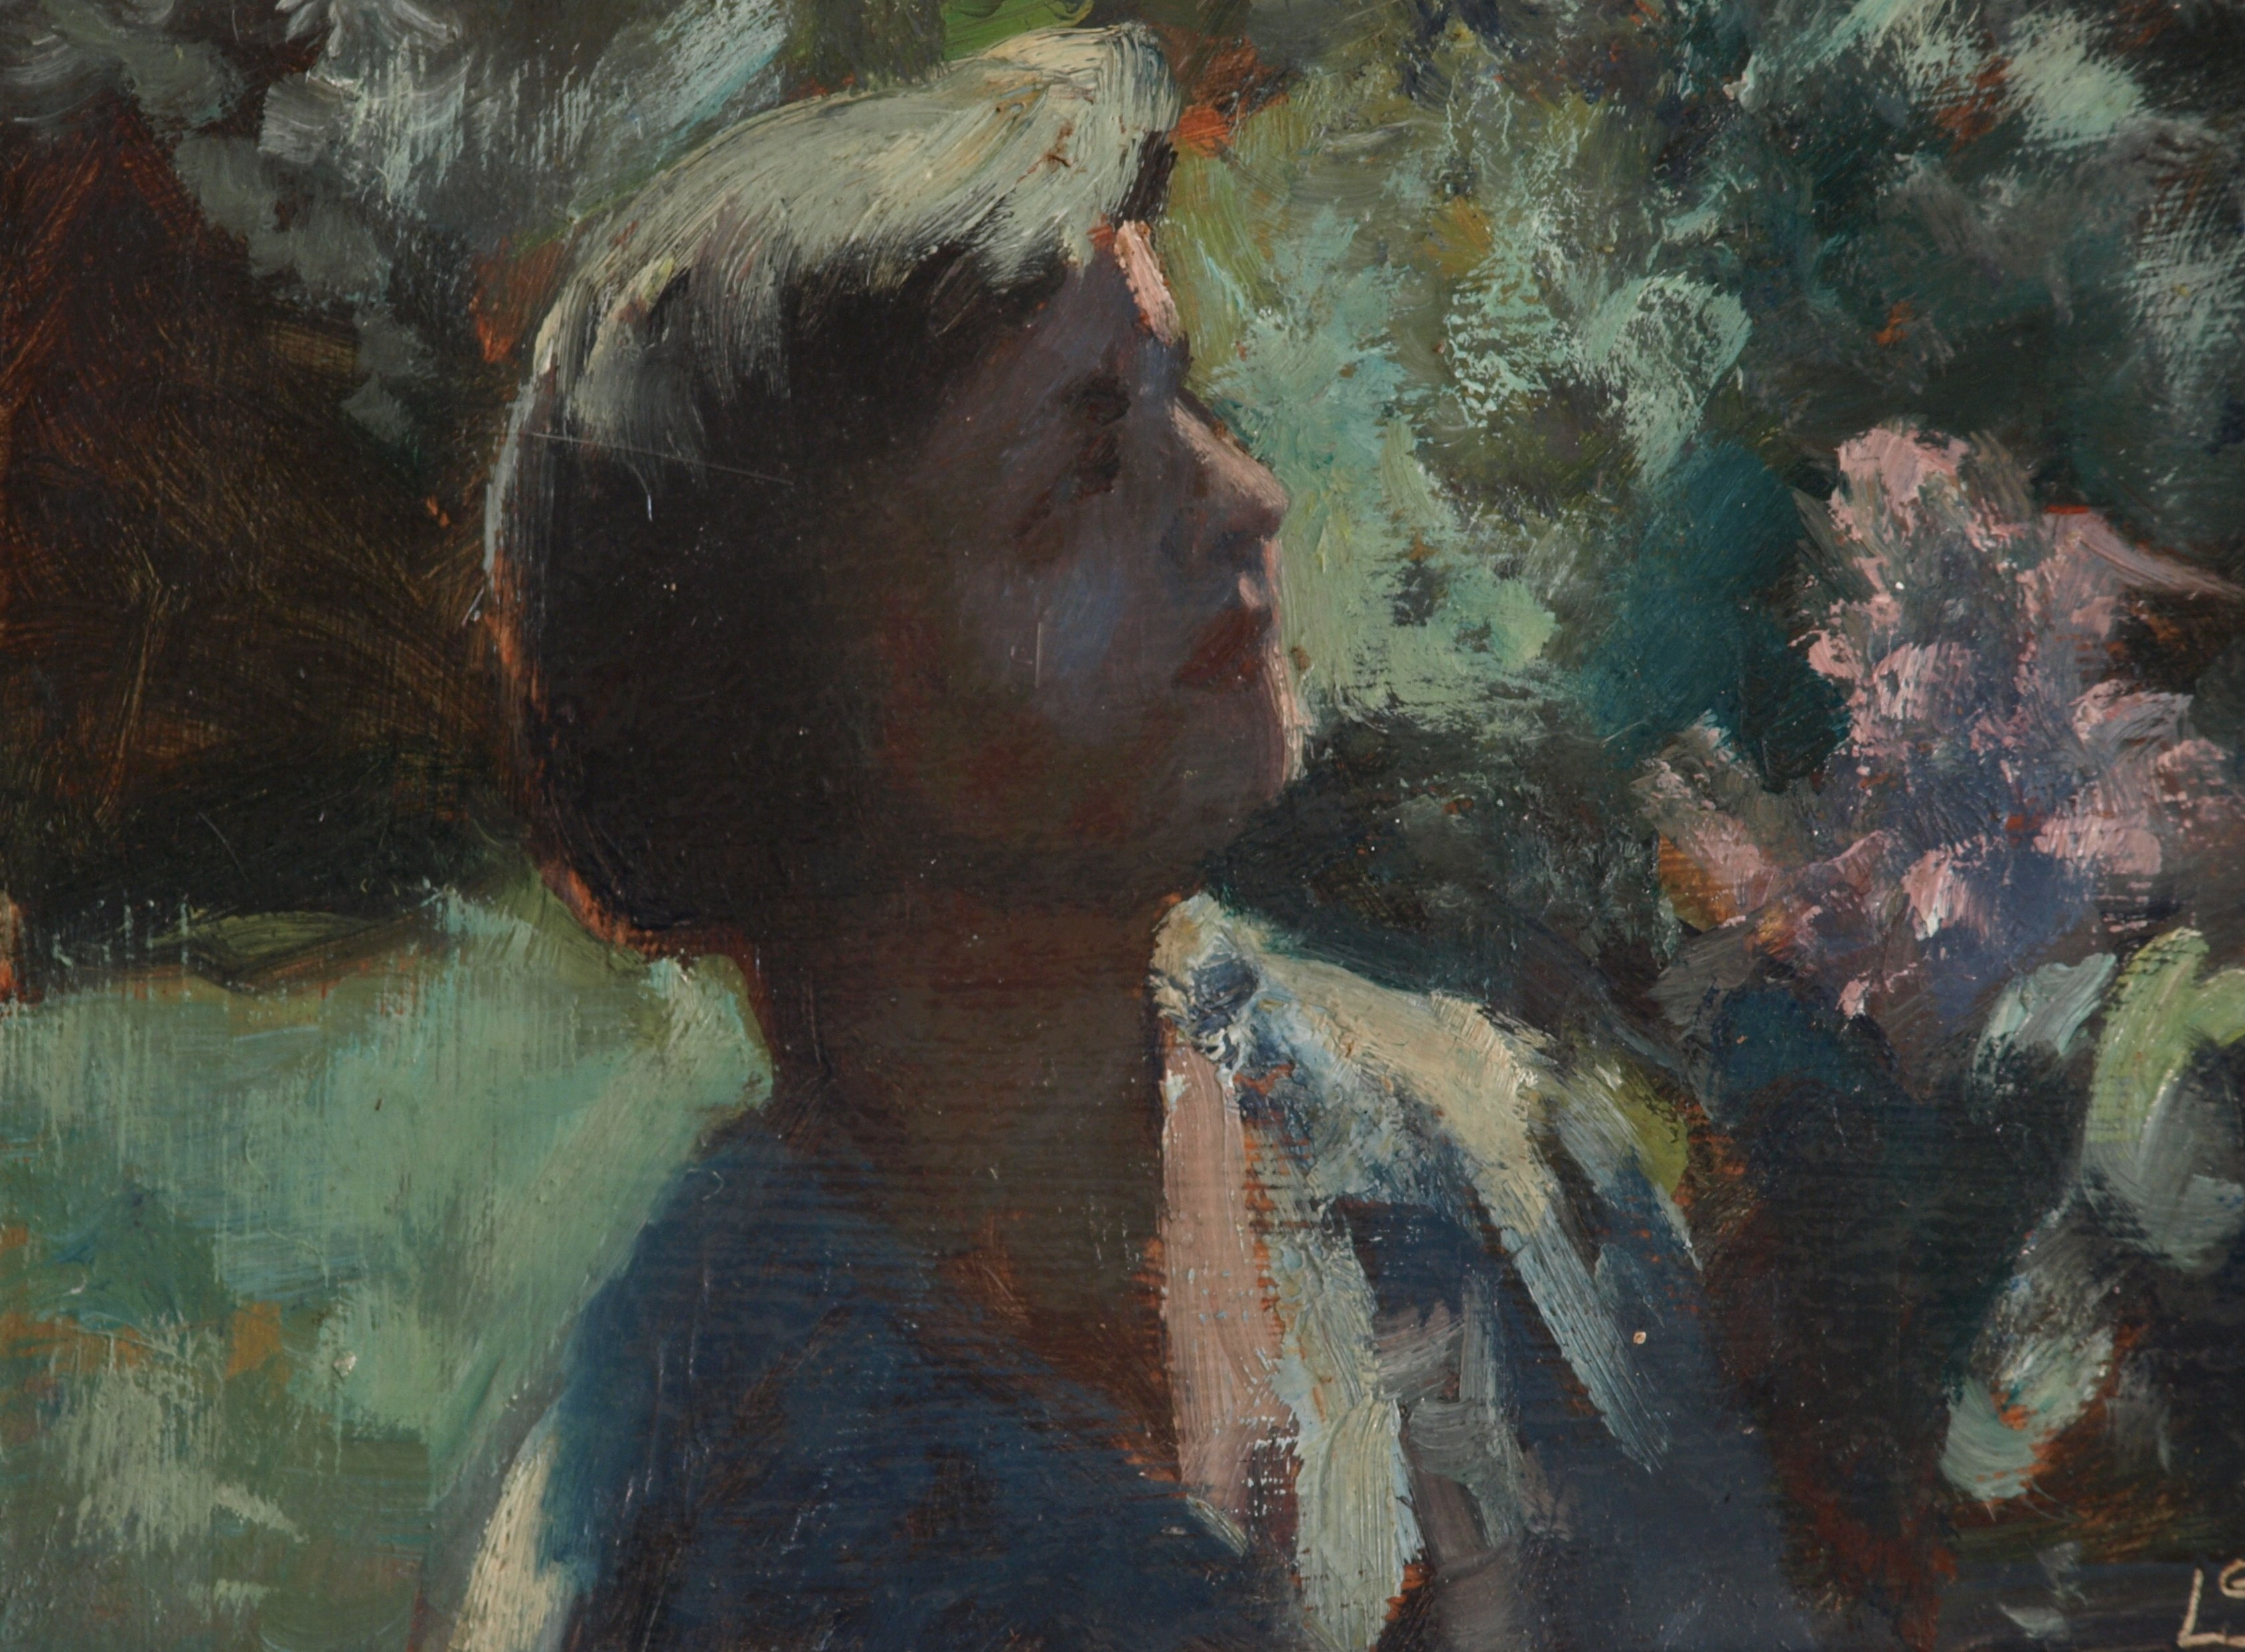 Ruth Smelling Lilacs, Oil on Panel, 8 x 12 Inches, by Bernard Lennon, $225